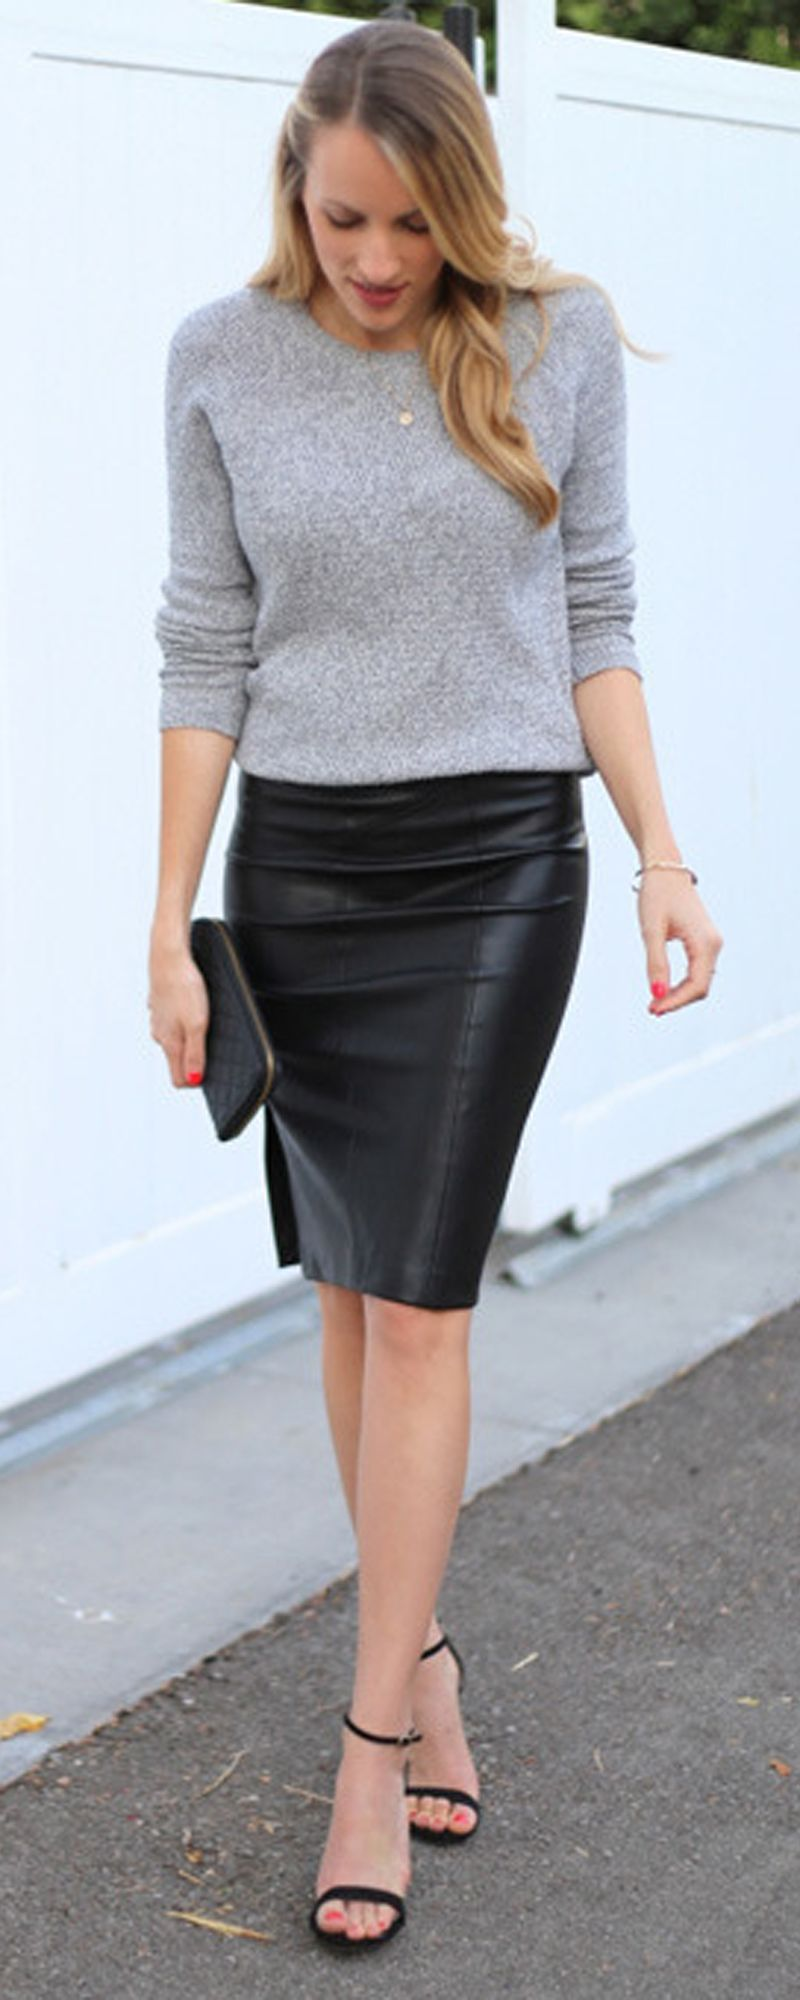 black bodycon split leather skirt  leather skirt outfit